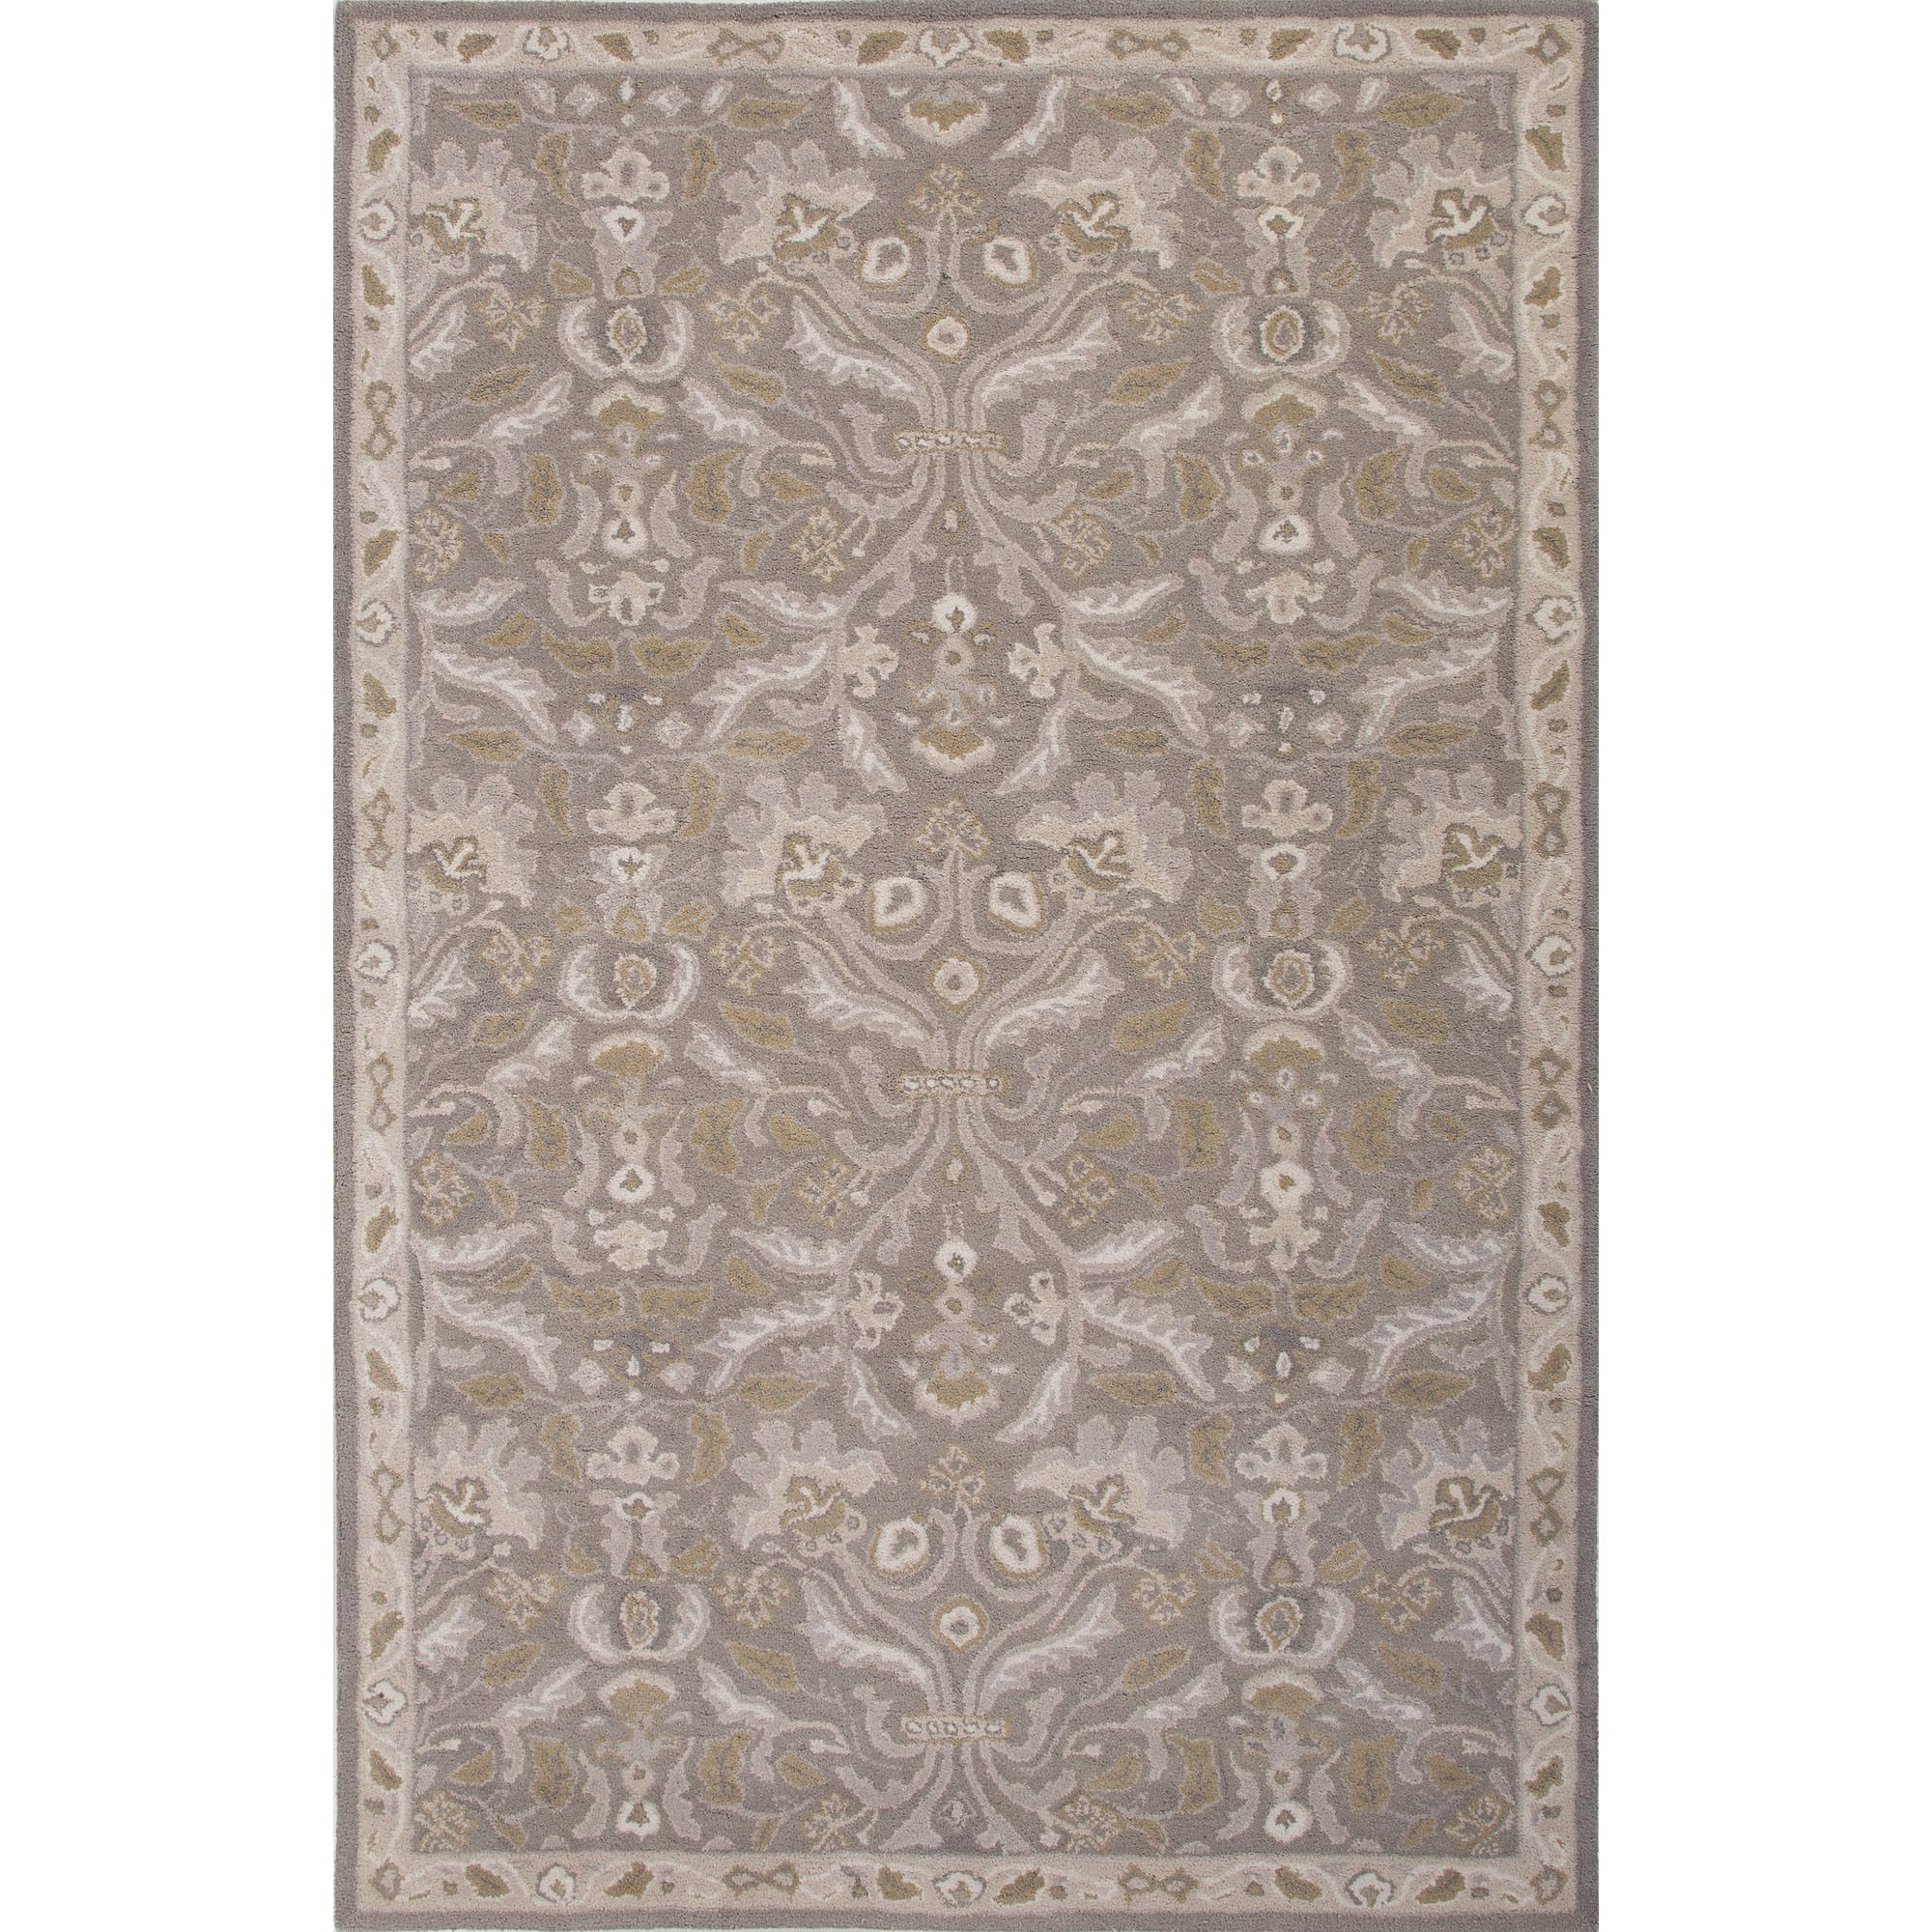 Jaipur Rugs Transitional Oriental Pattern Gray Wool Area Rug PM121 (Rectangle)